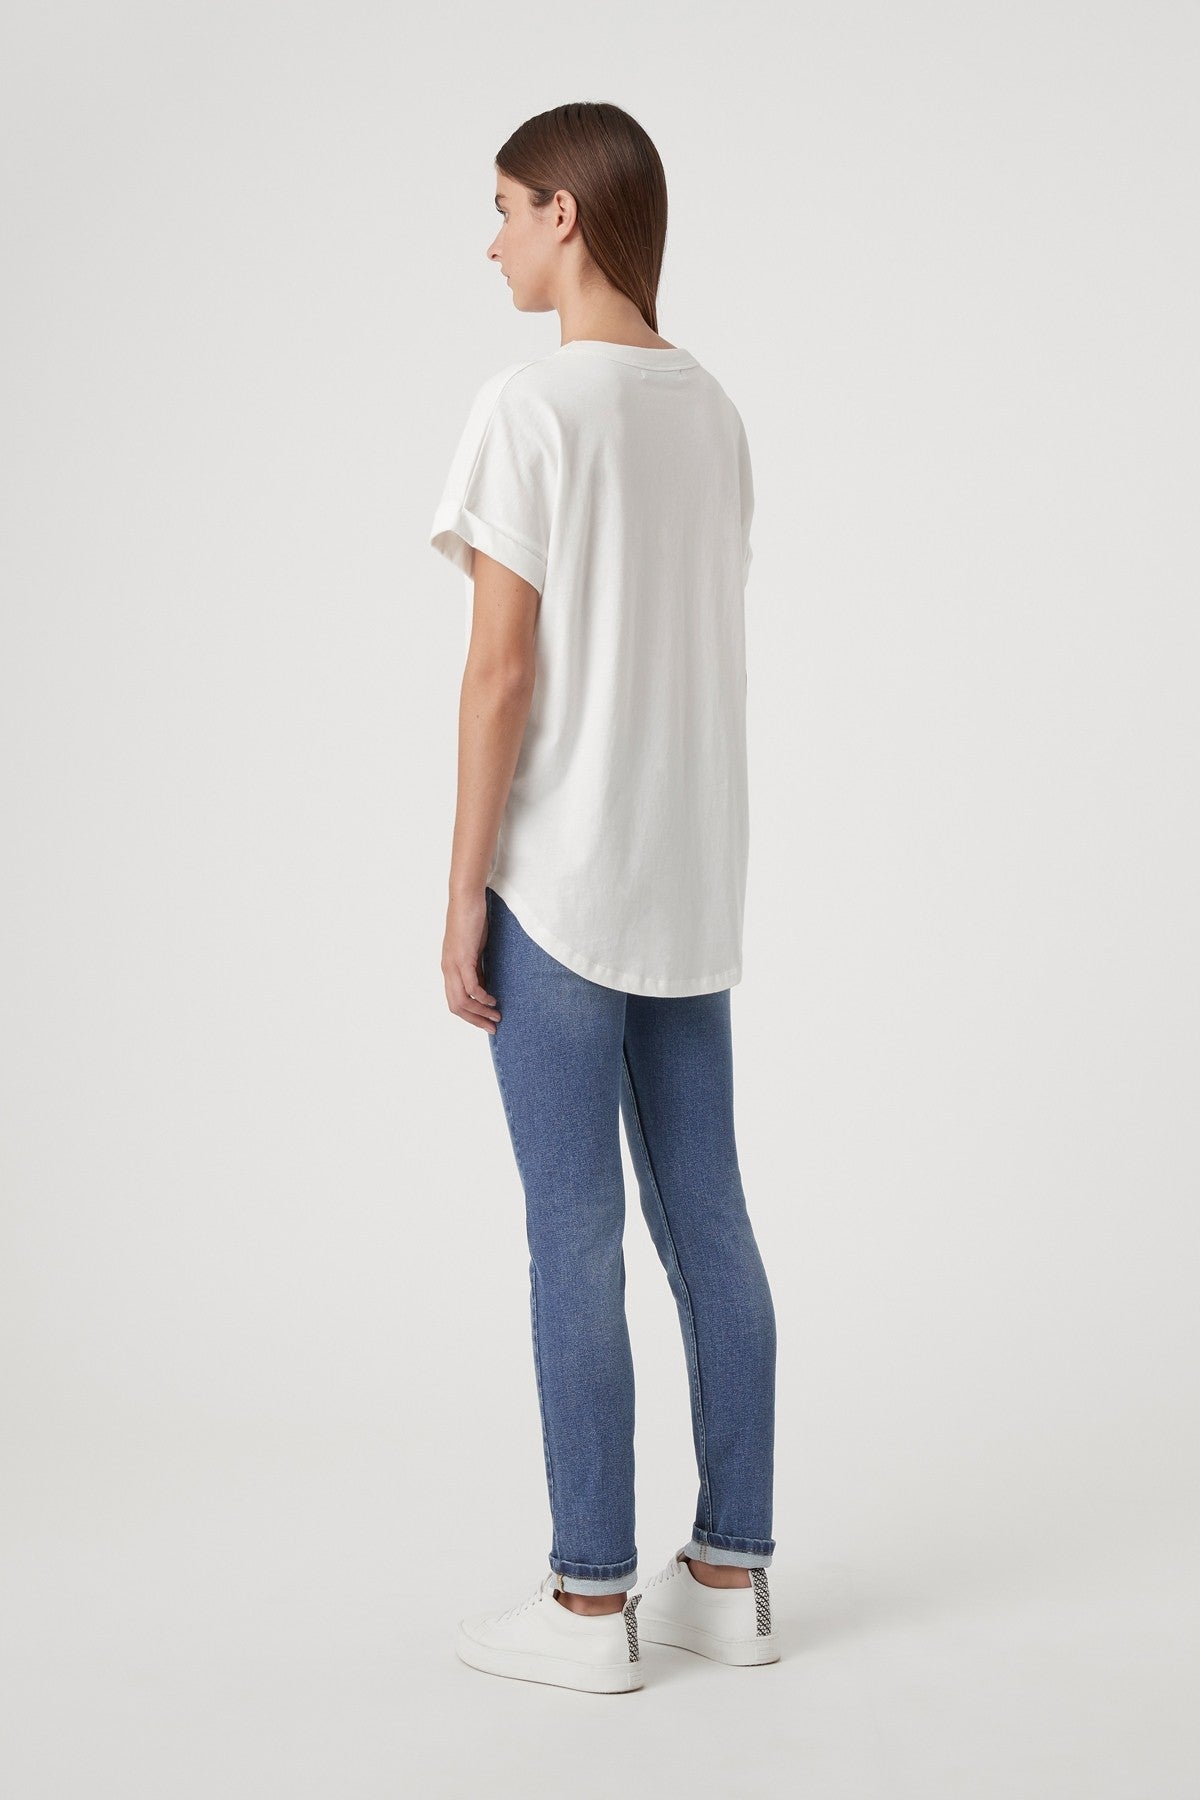 Camilla and Marc Huntington Tee in White